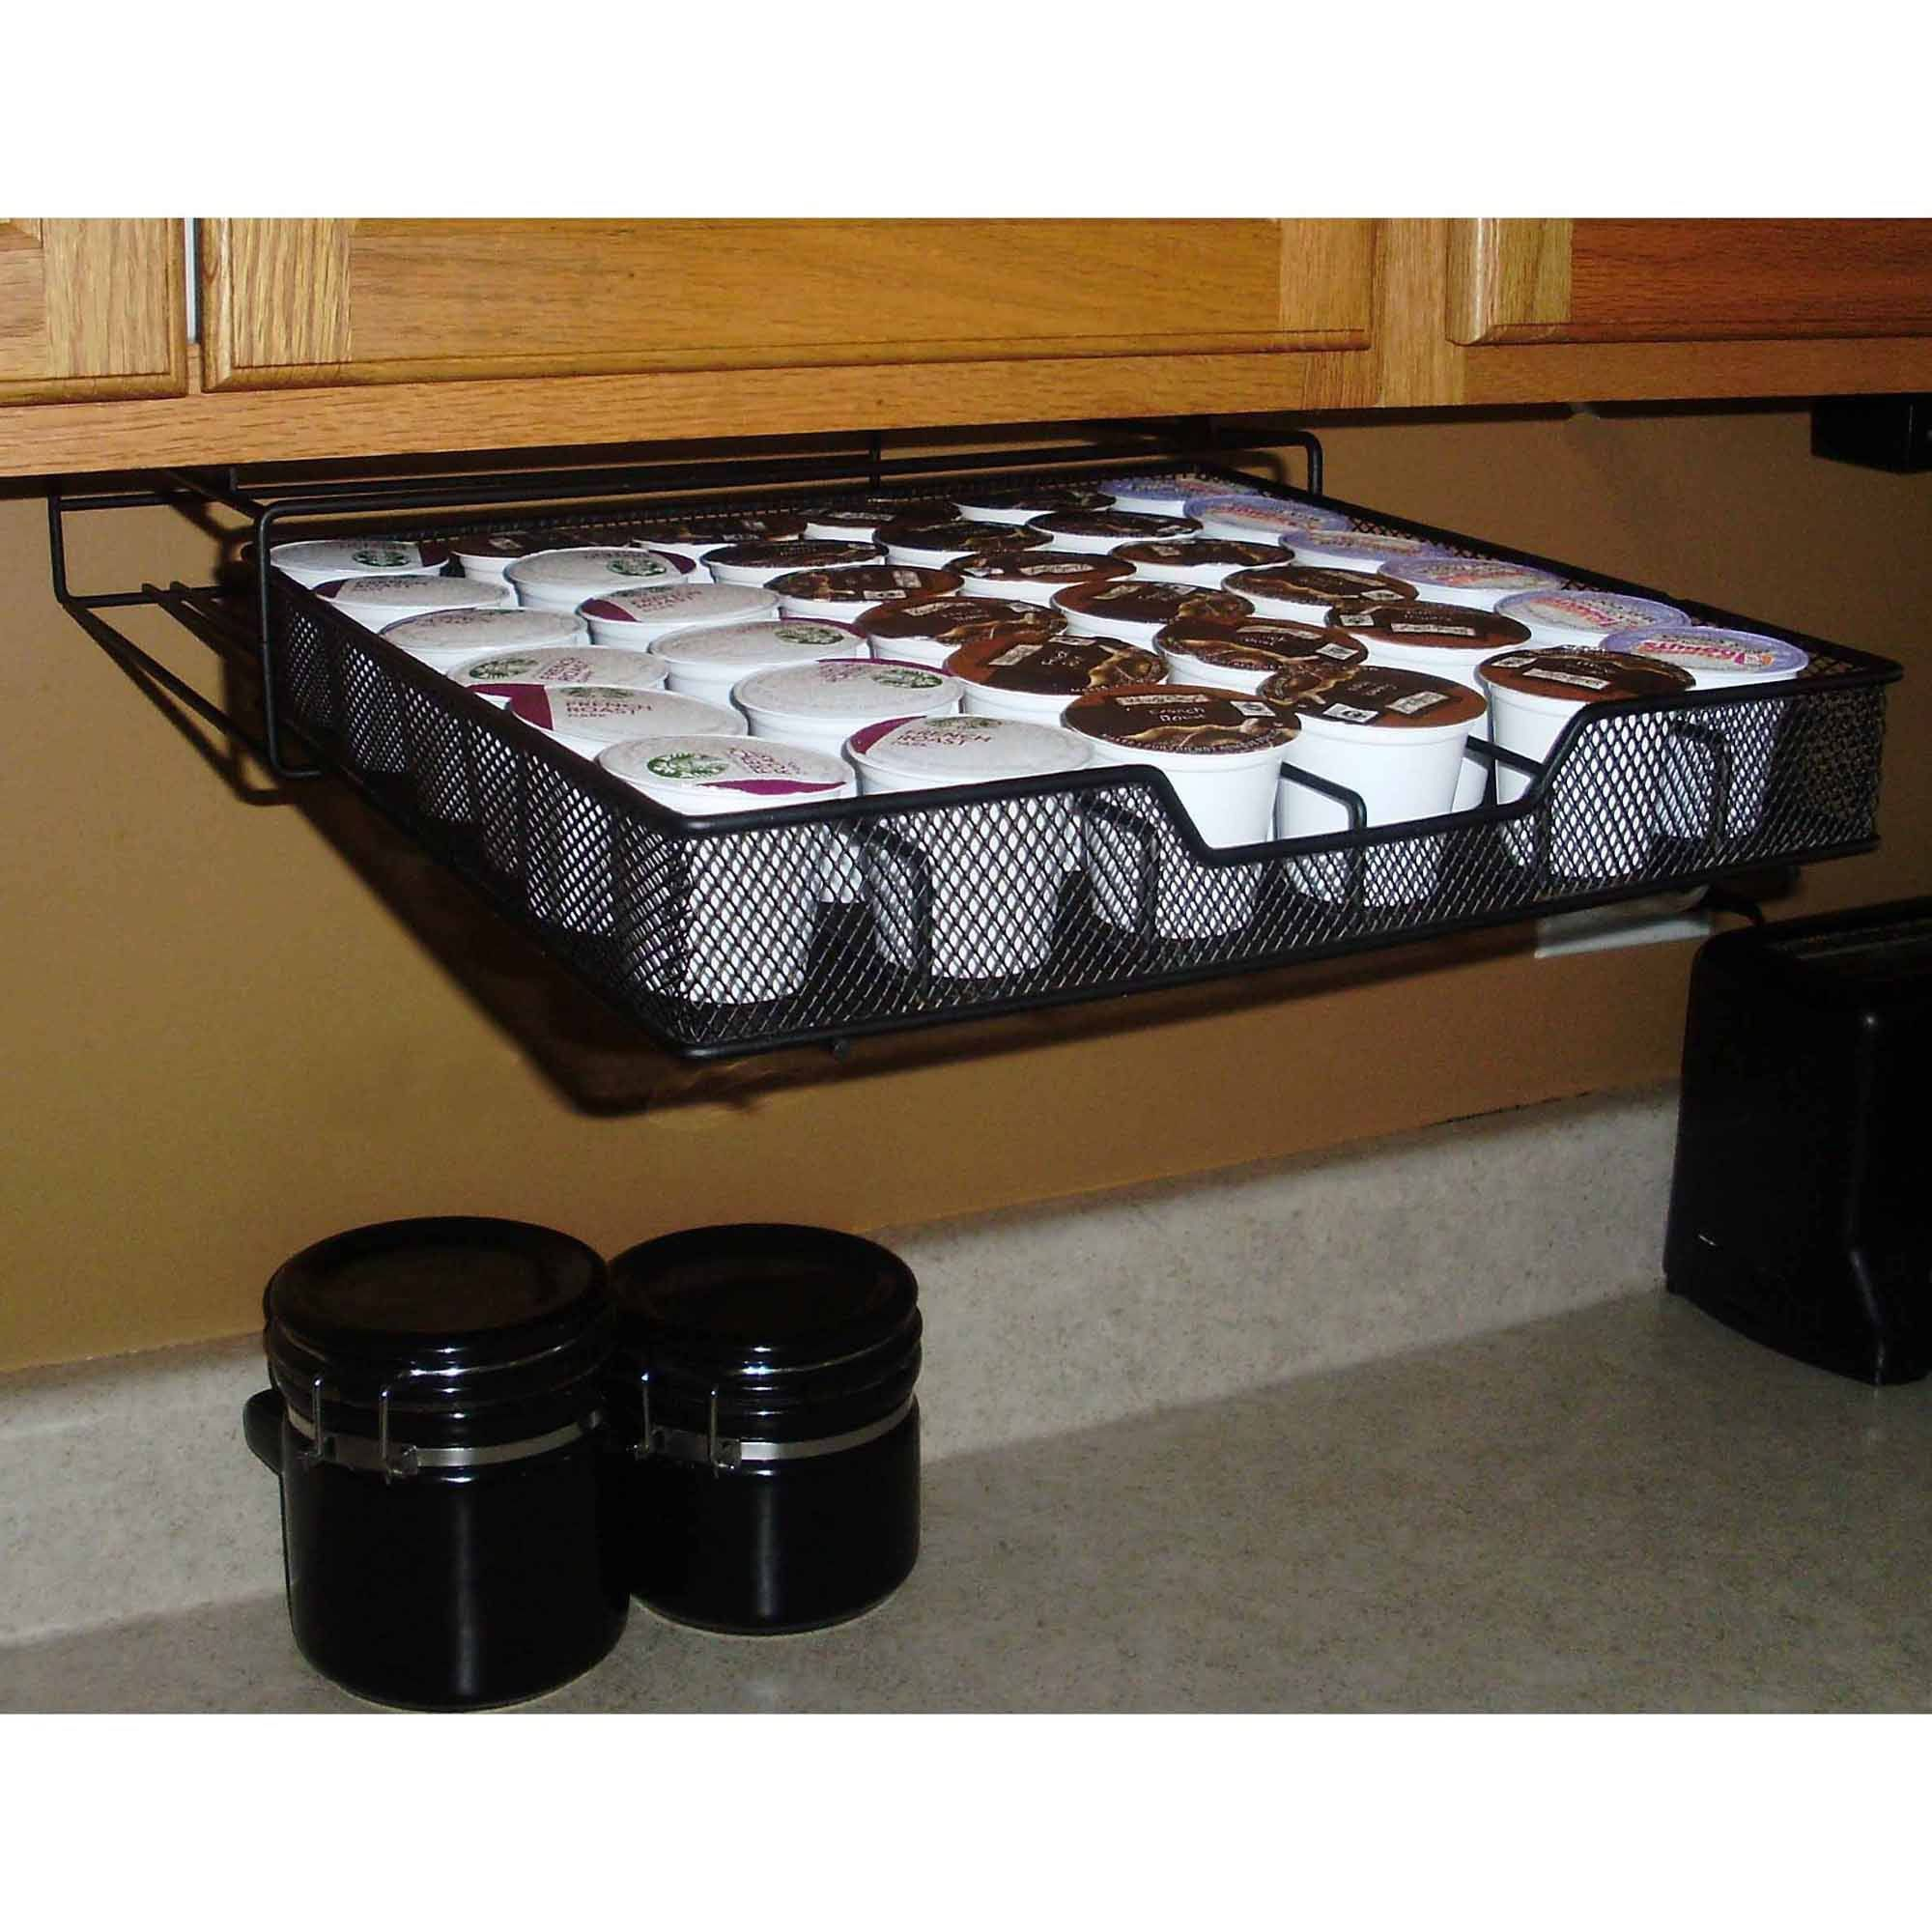 The PullOut KCup Holder now allows you